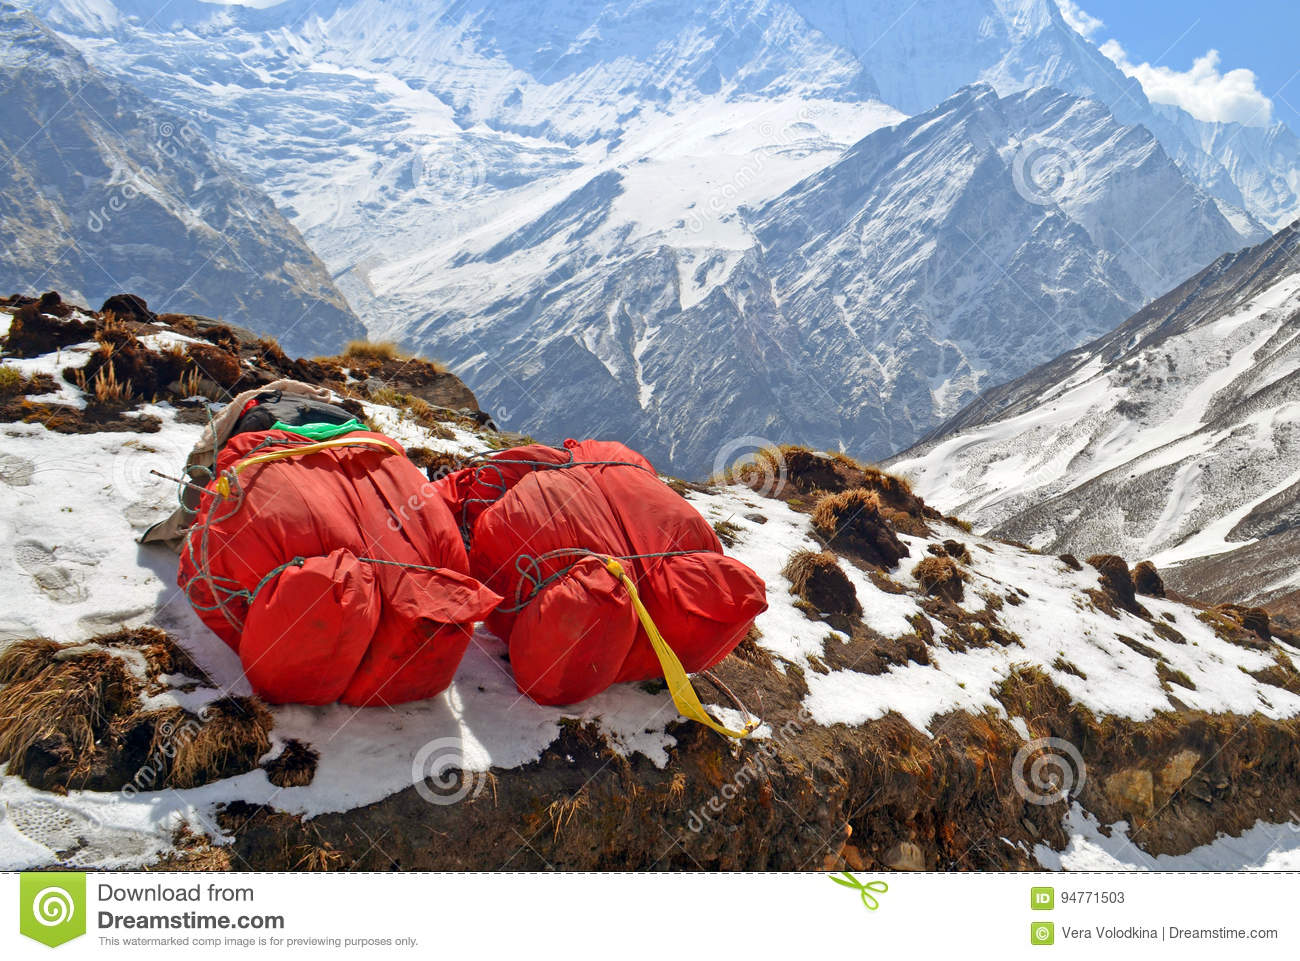 Two huge red backpacks for mountain expedition on snow. Porter Mountaineering equipment.